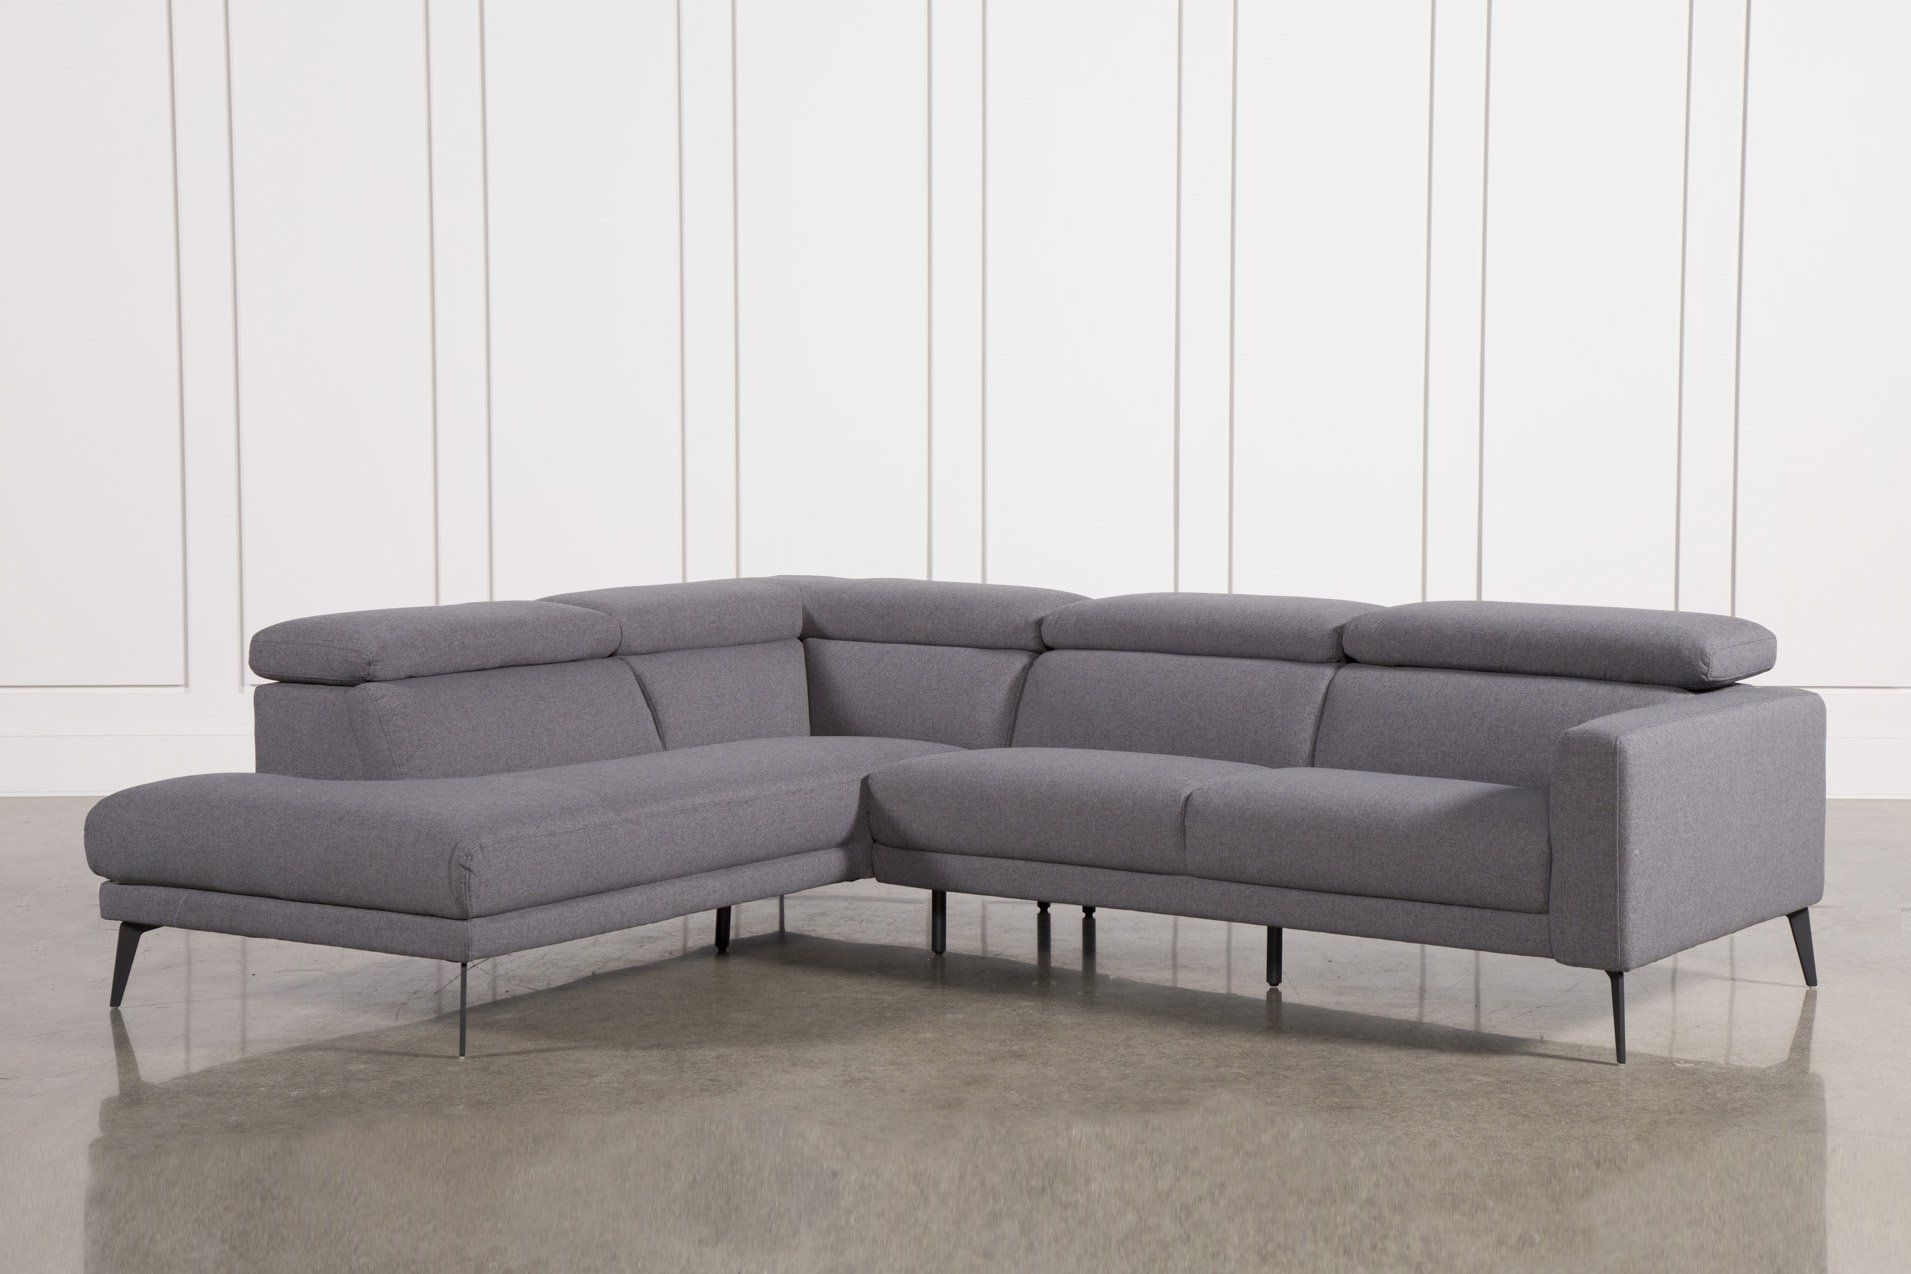 Ikea – Norsborg, Sofa, Edum Beige, , Large Or Small, Color With Cosmos Grey 2 Piece Sectionals With Laf Chaise (Image 13 of 25)